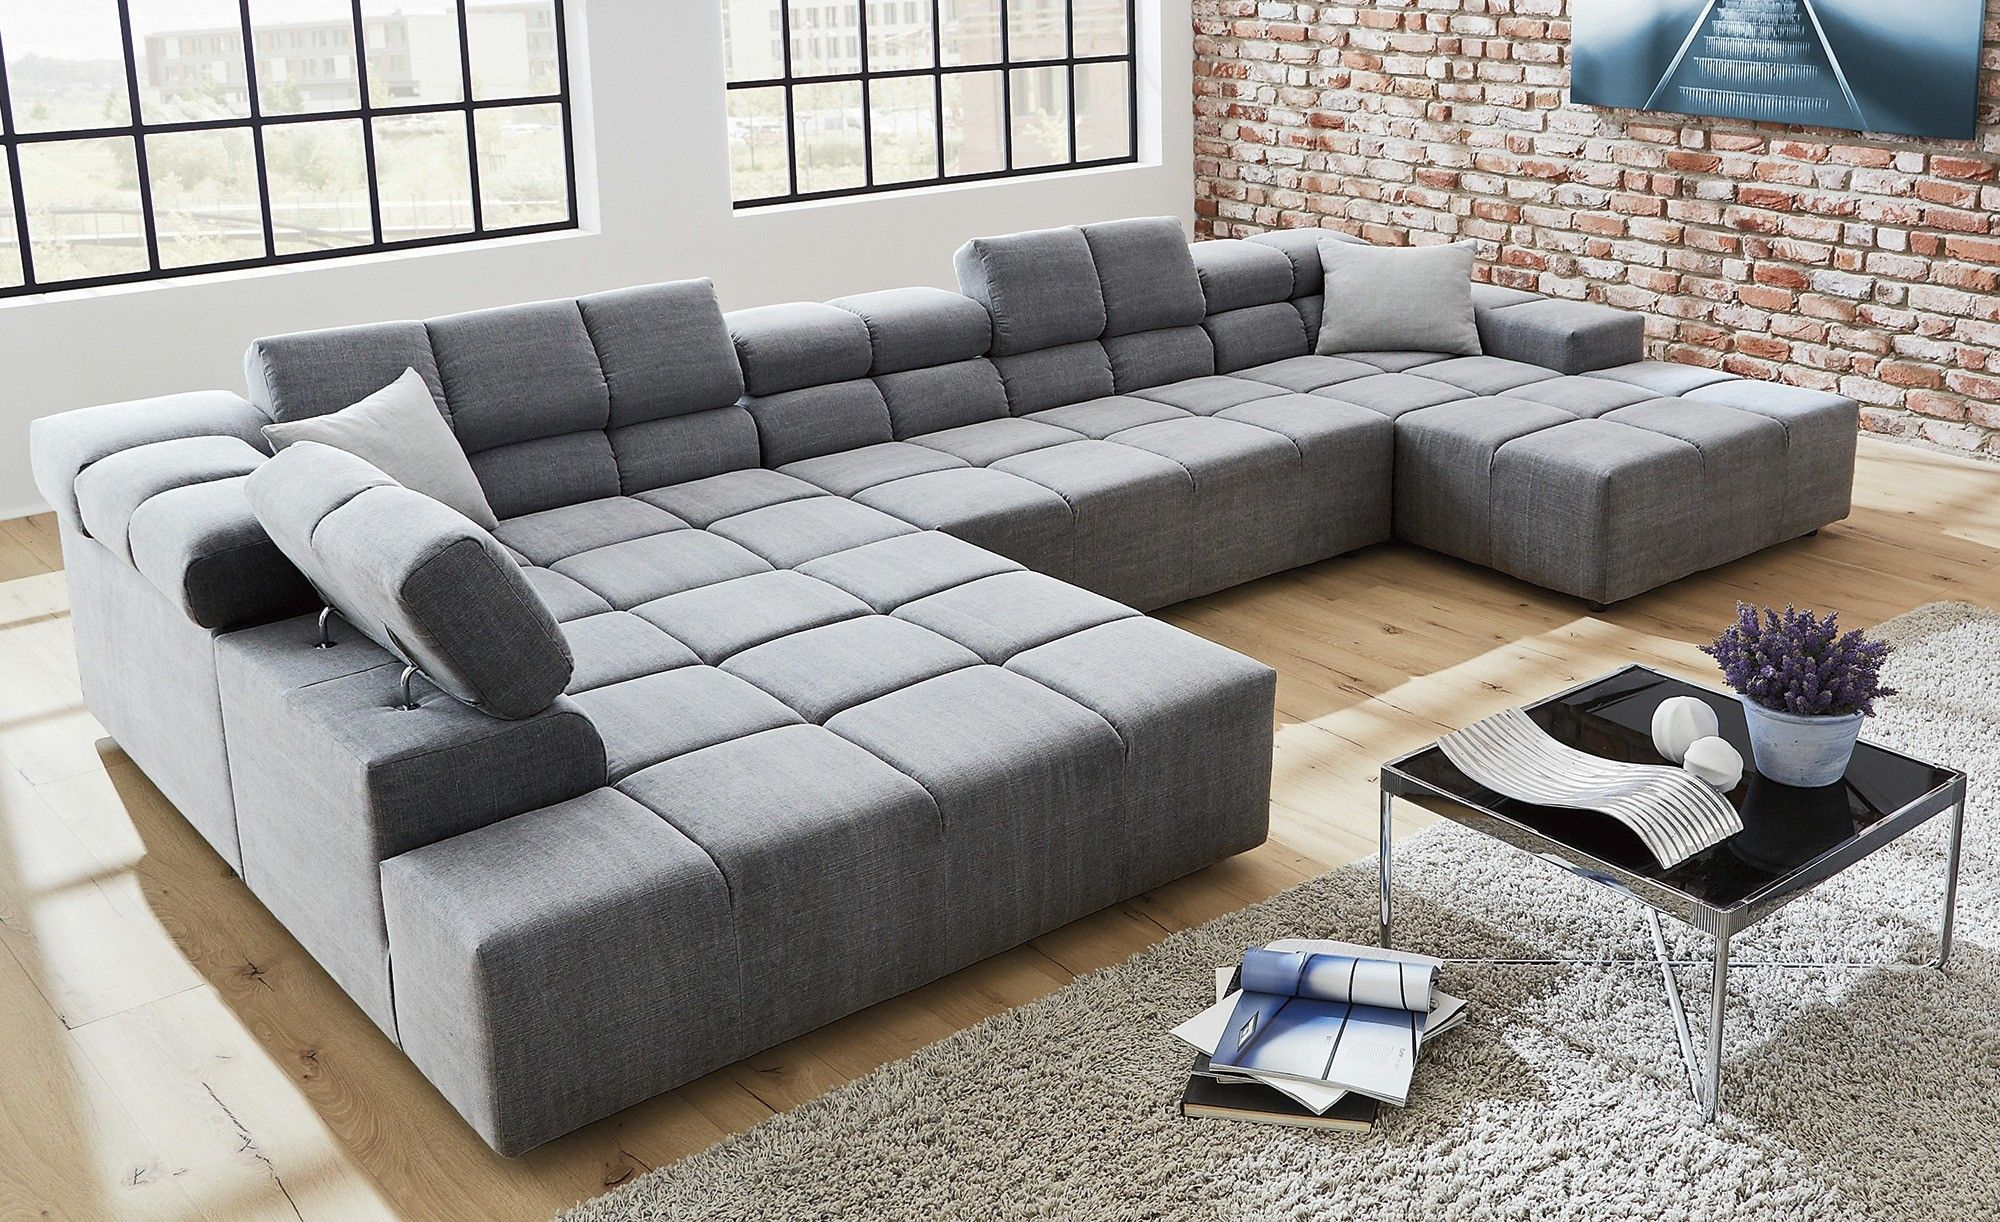 Schön Ecksofa Breit Modern Bedroom Furniture Furniture Design Sofa Furniture